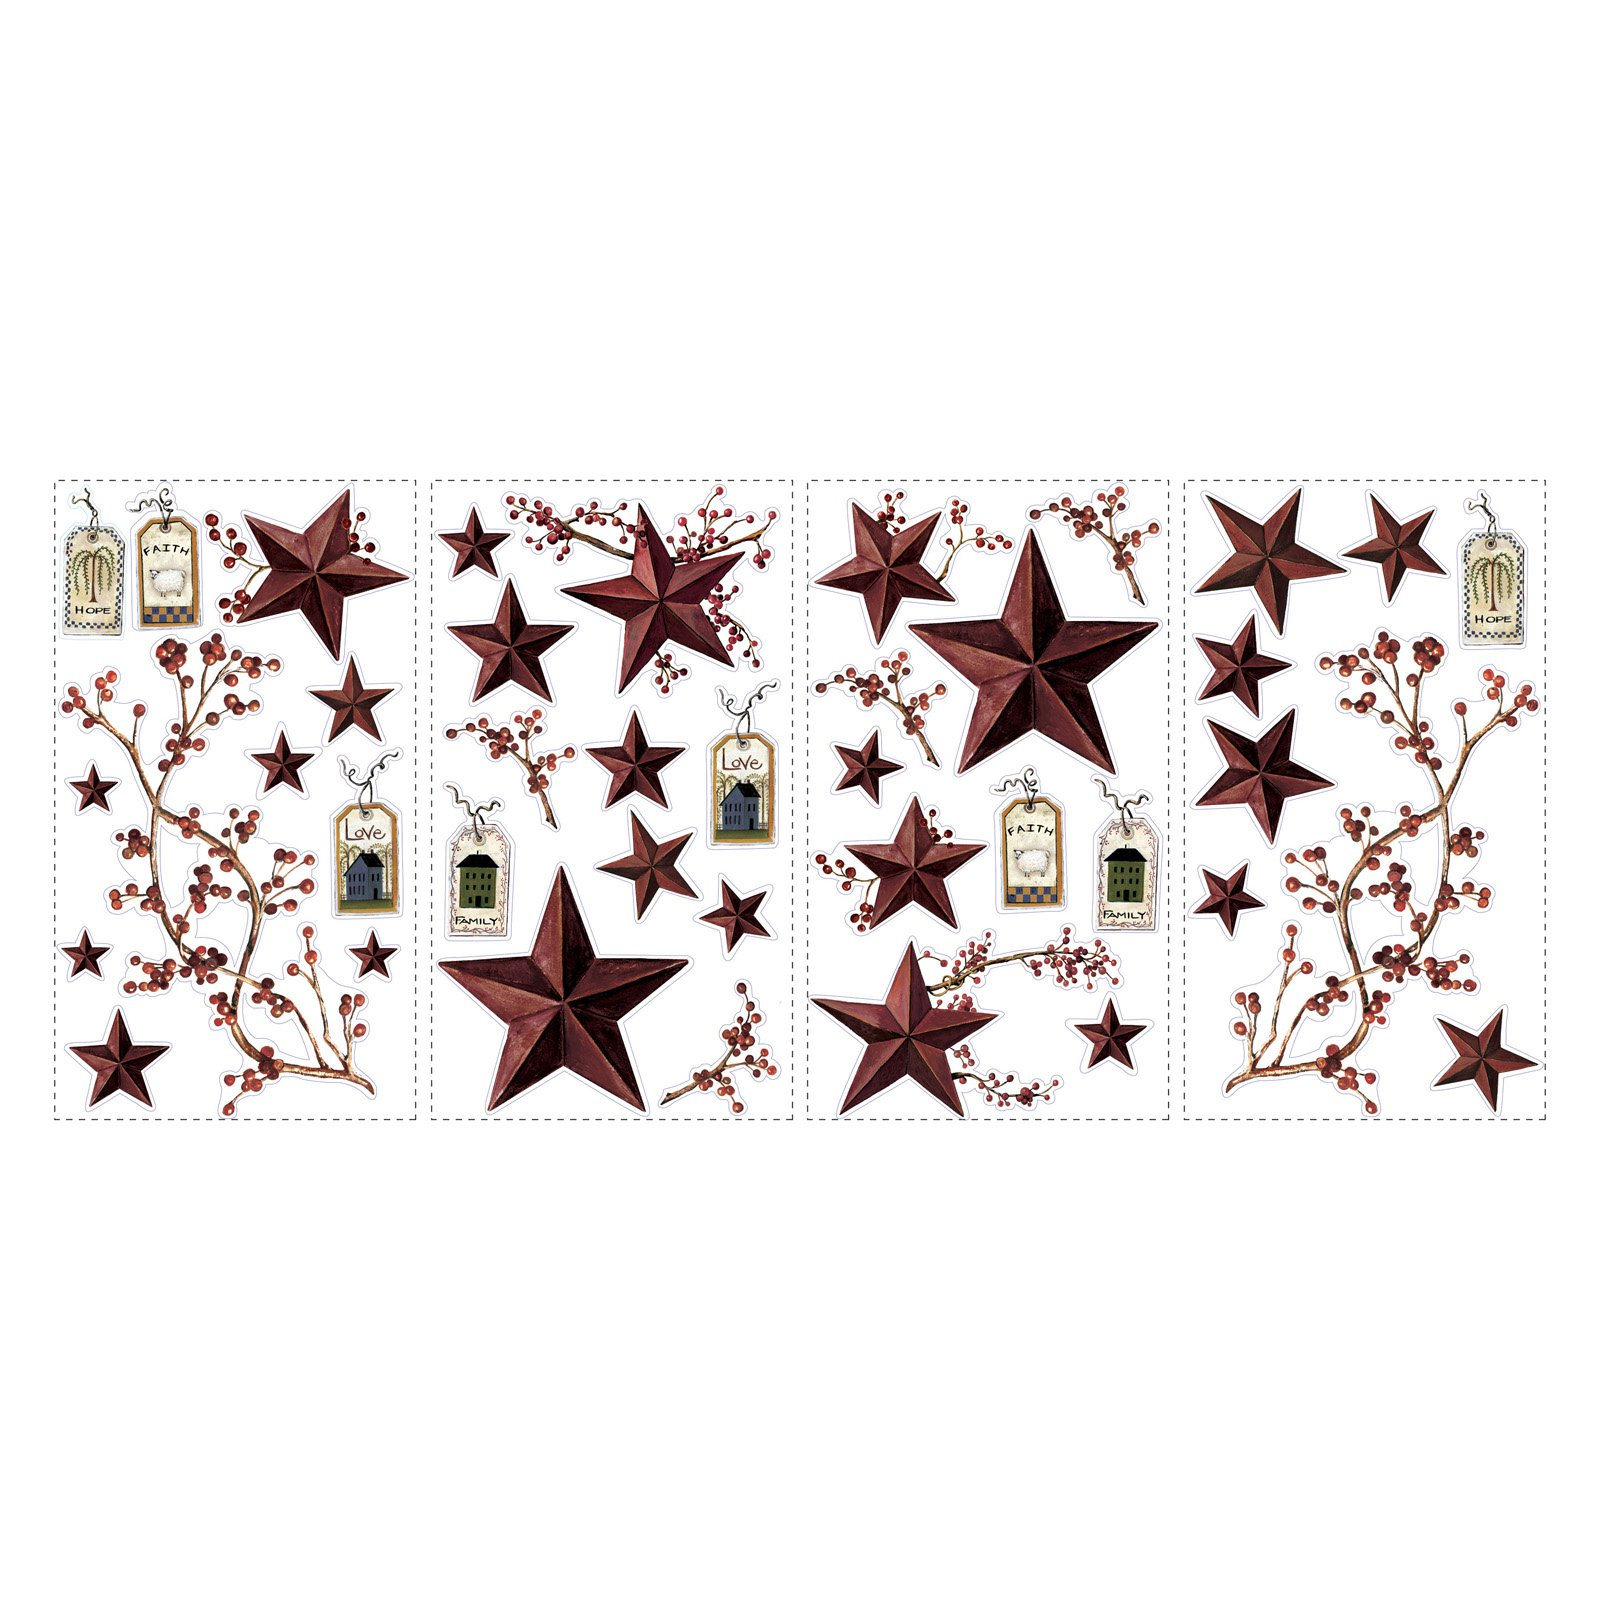 RoomMates Country Stars and Berries Peel and Stick Wall Decals